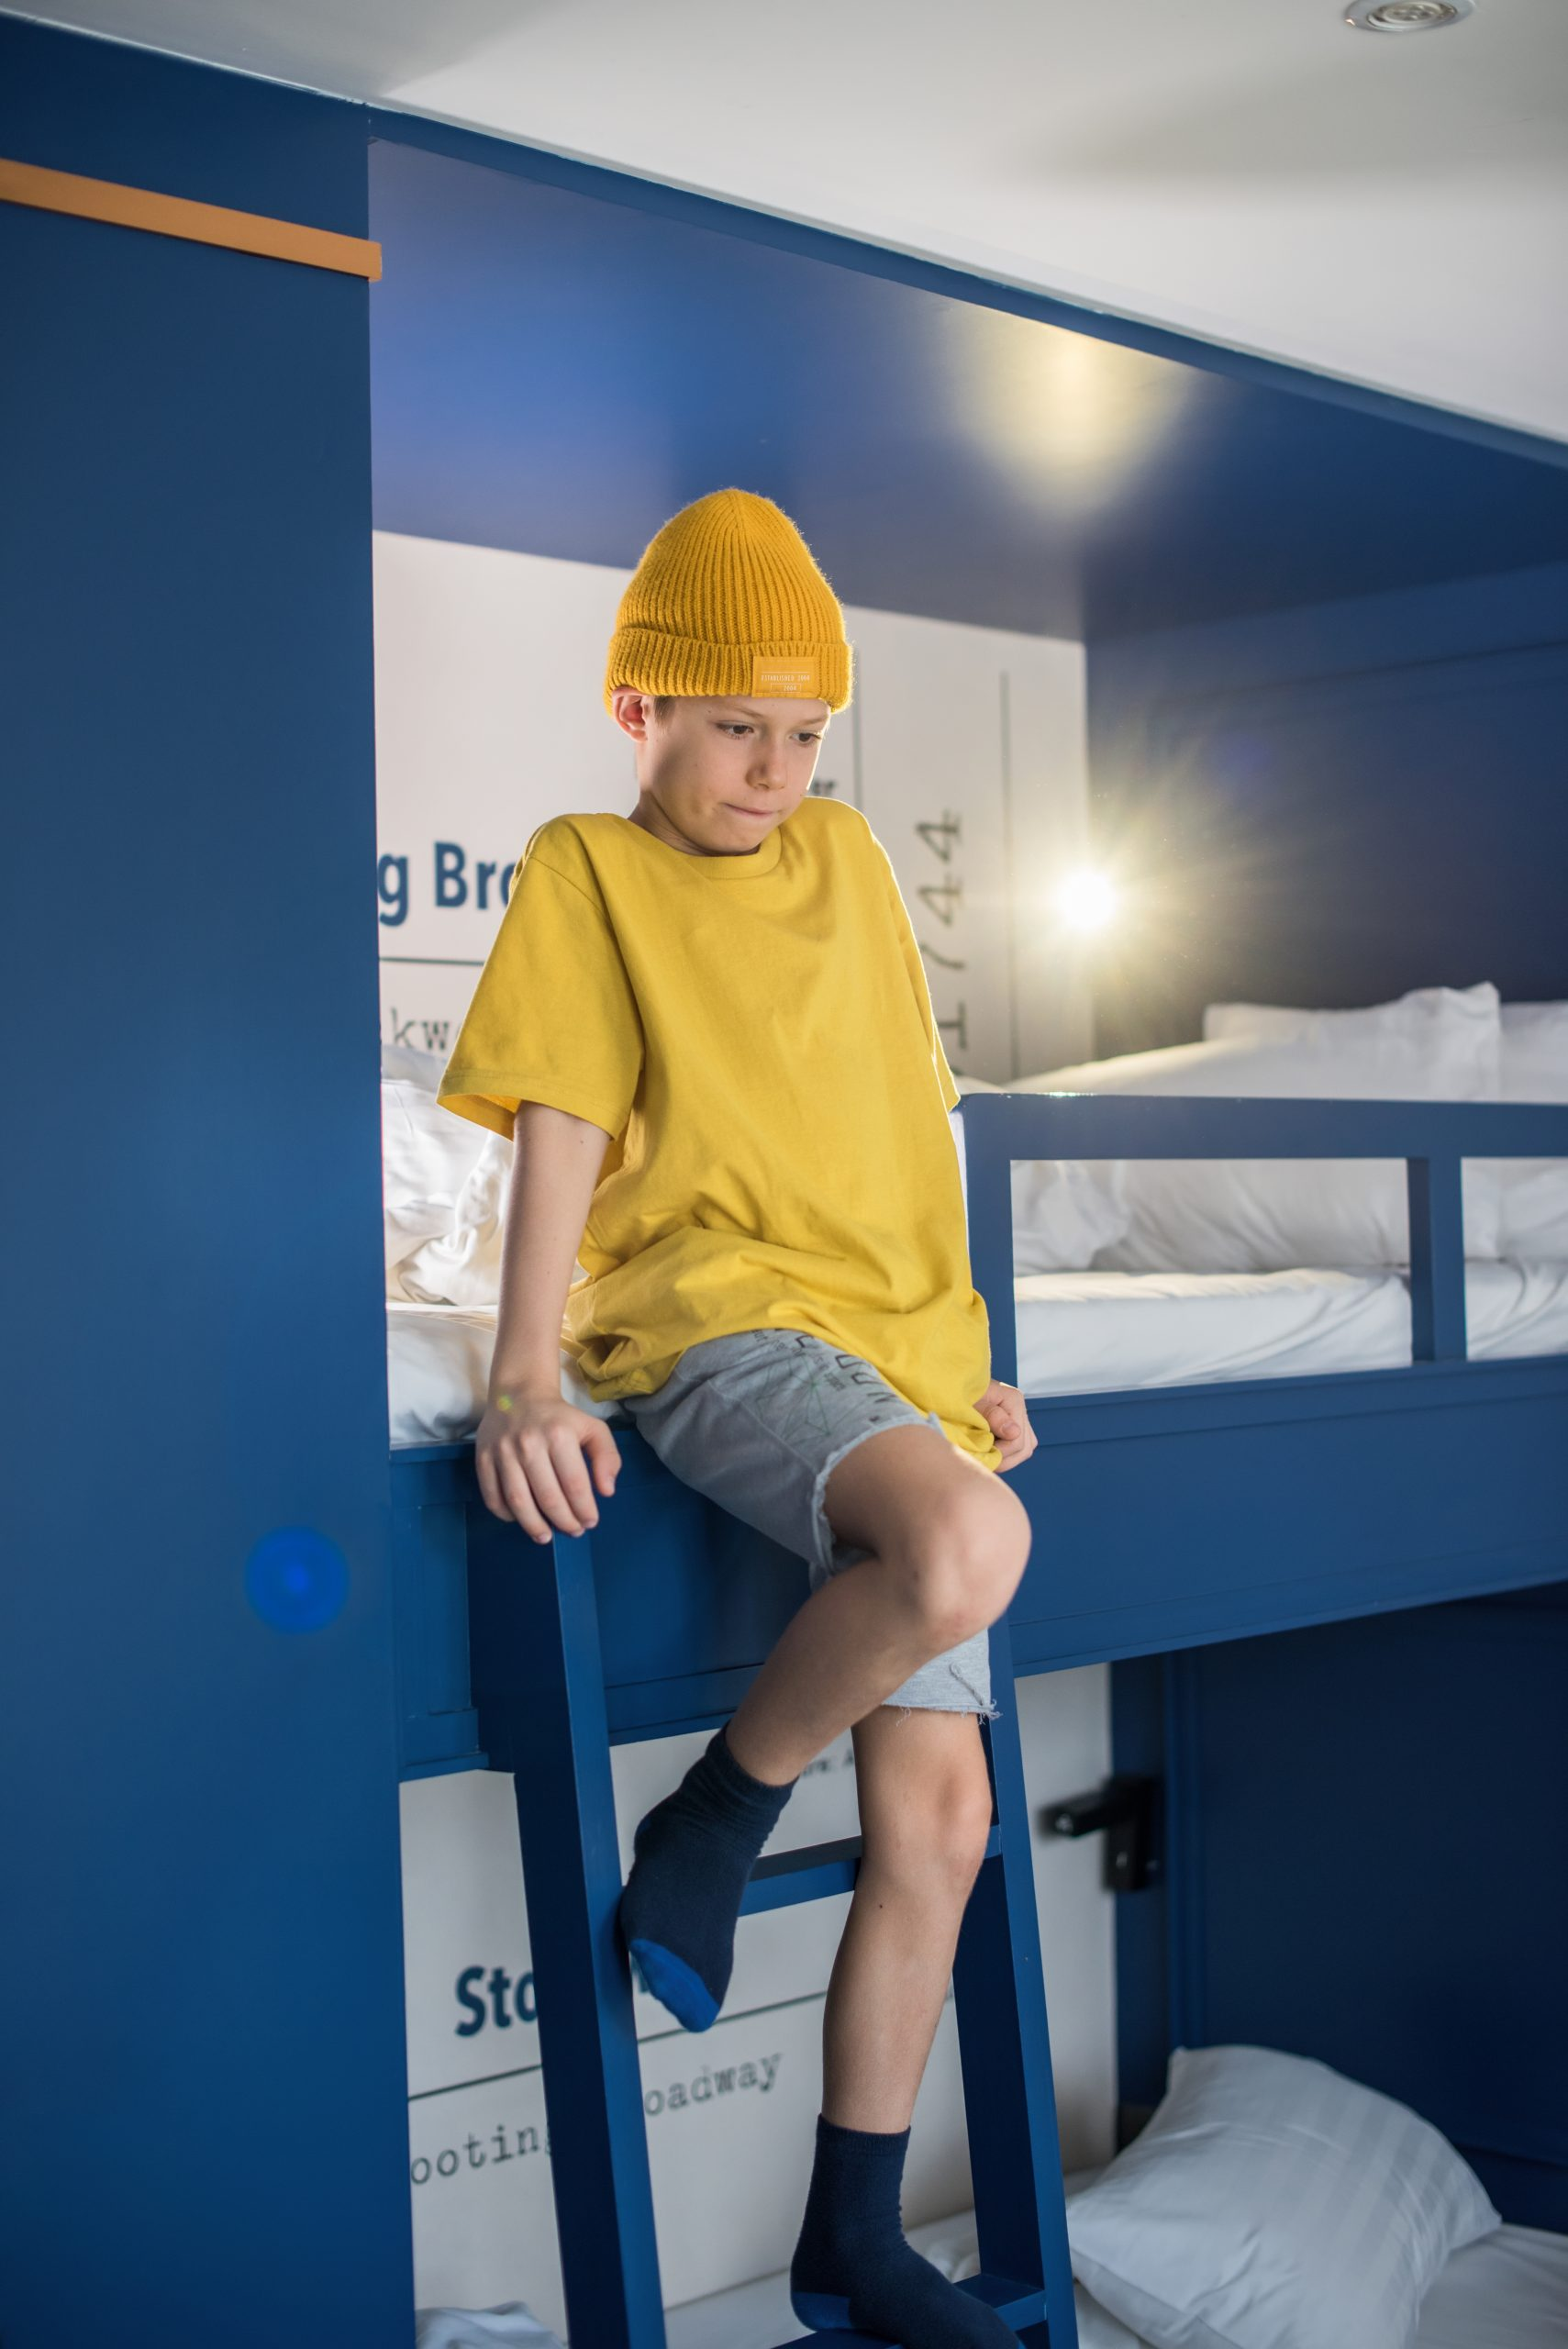 boy-in-yellow-t-shirt-and-hat-is-spending-time-pla-D56YL5H